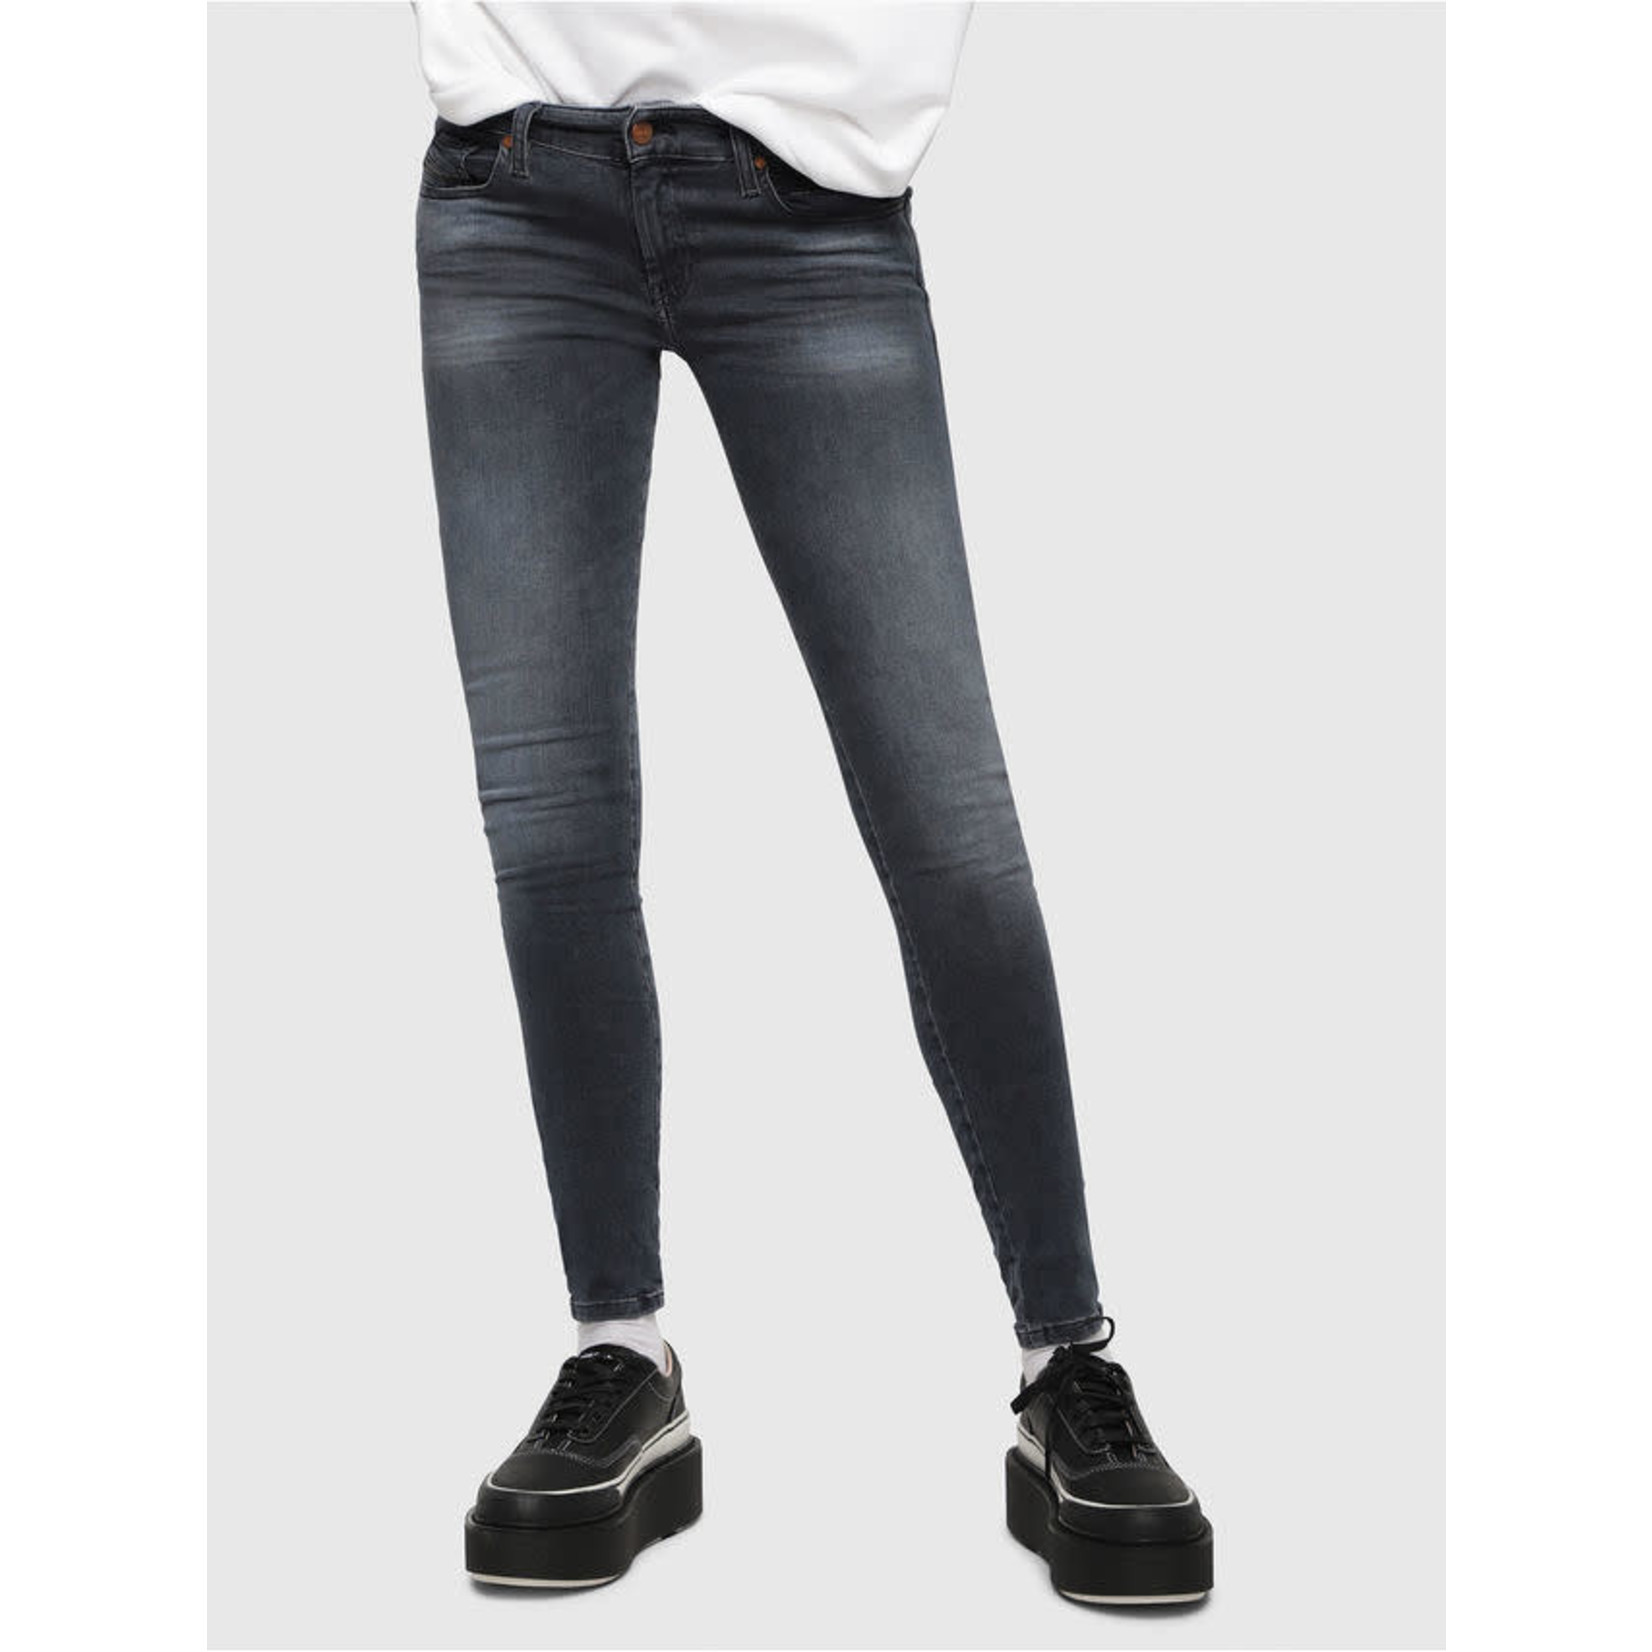 DIESEL DIESEL WOMEN'S JEANS SLANDY LOW 069BT - DARK BLUE